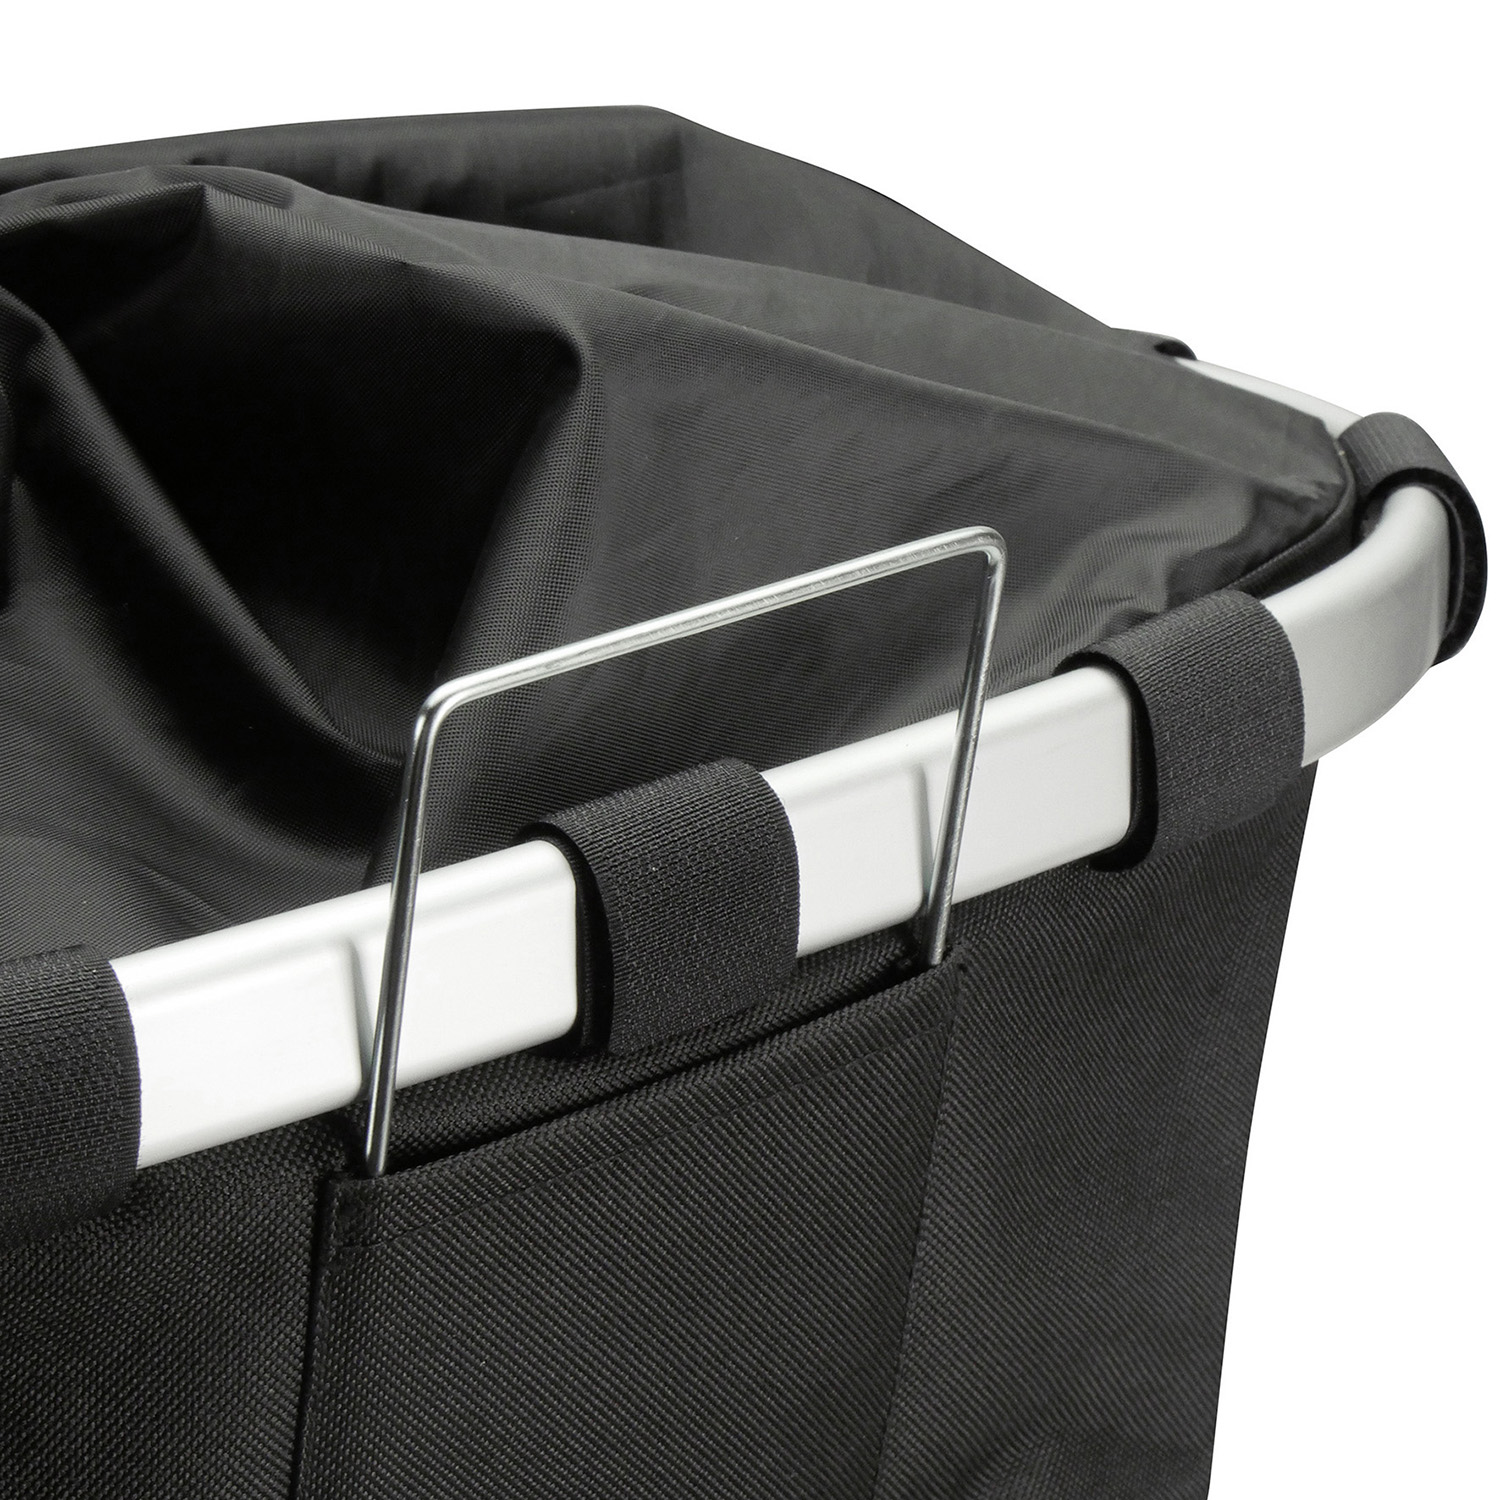 Carrybag GT, transverse textile basket – for any type of carrier